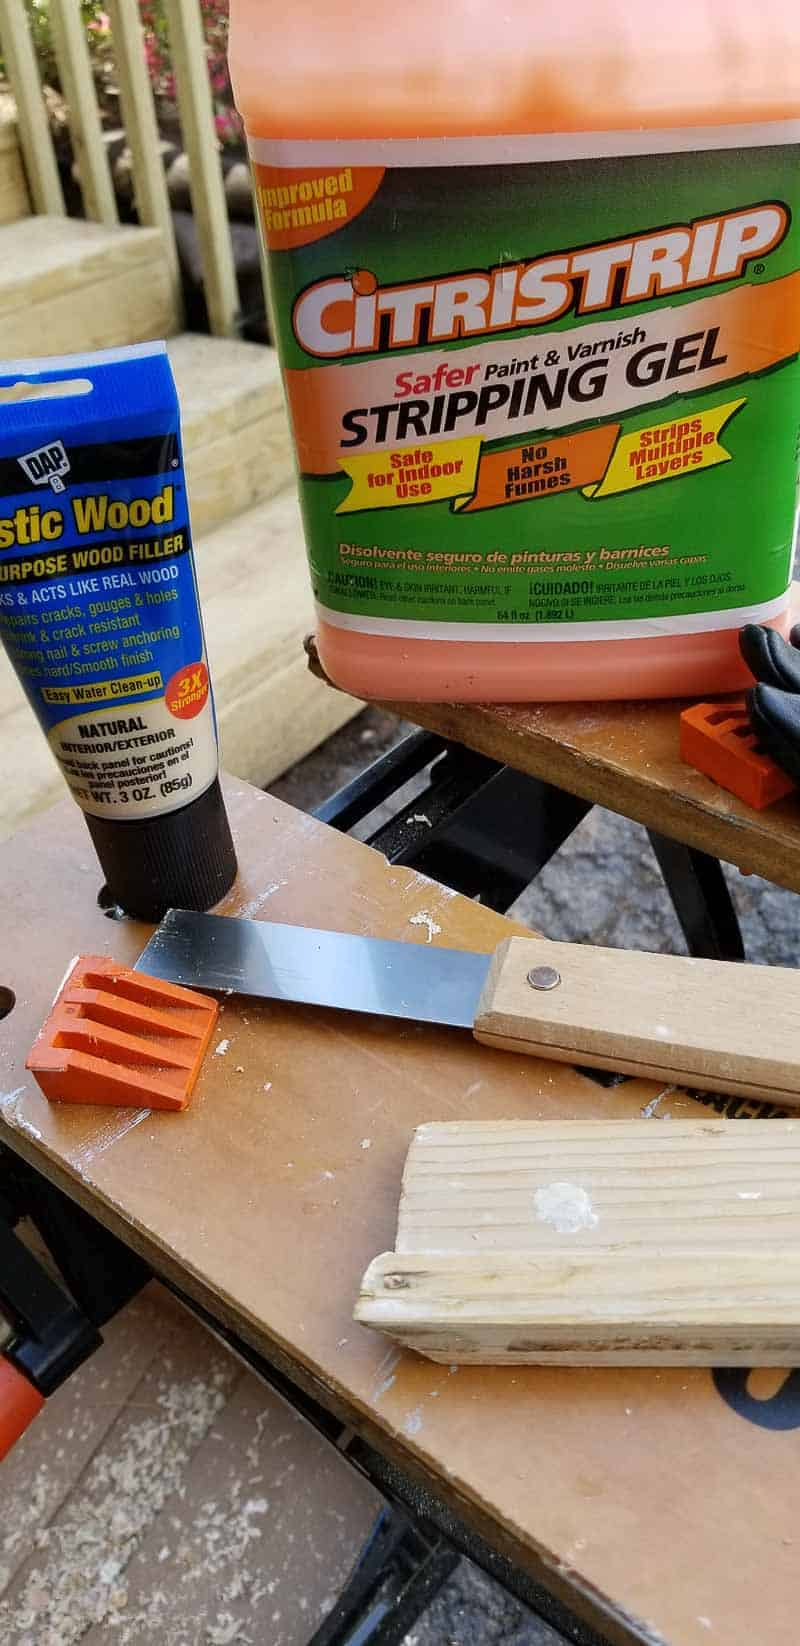 Tools and products used to strip trim from old baseboard before installing after placing new farmhouse plank flooring